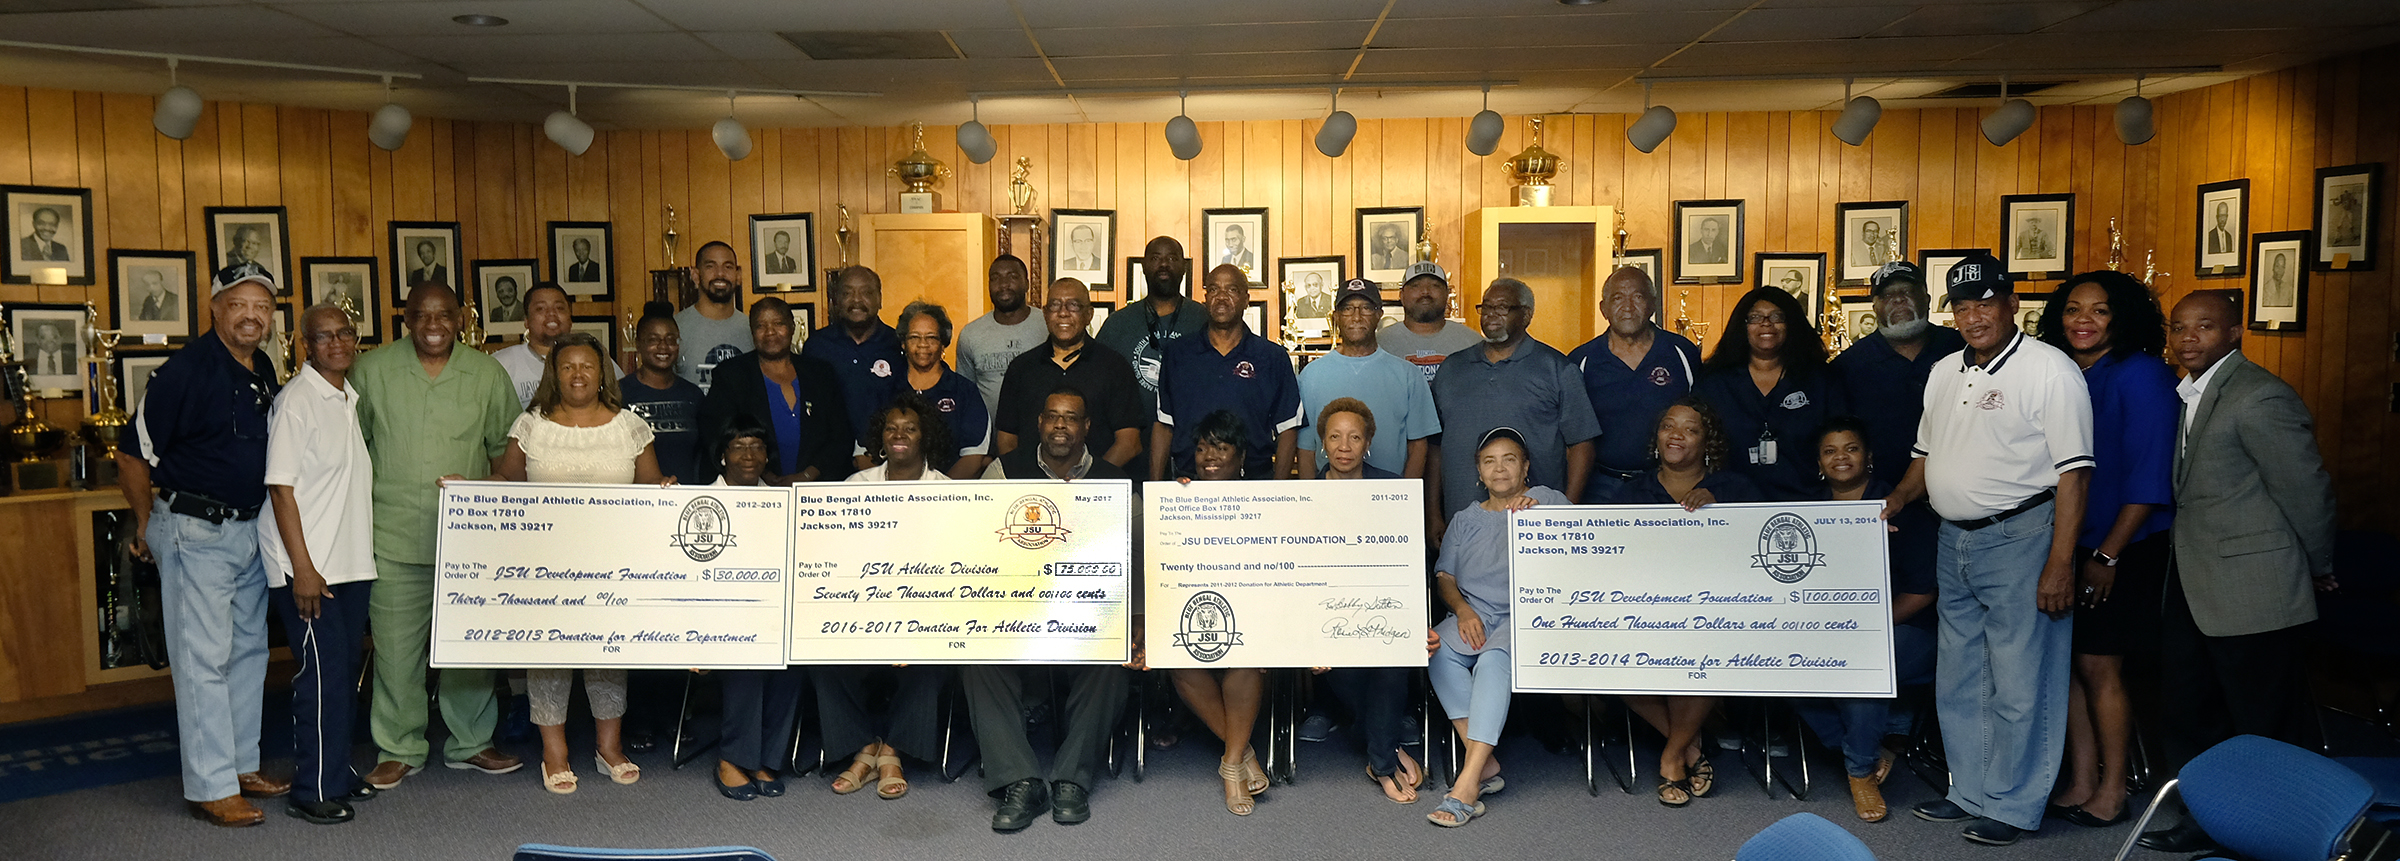 "Members of the Blue Bengals Athletic Association challenge JSU alumni to show that they ""bleed blue and white"" and give back to Jackson State University. (Photo by Charles A. Smith/JSU)"